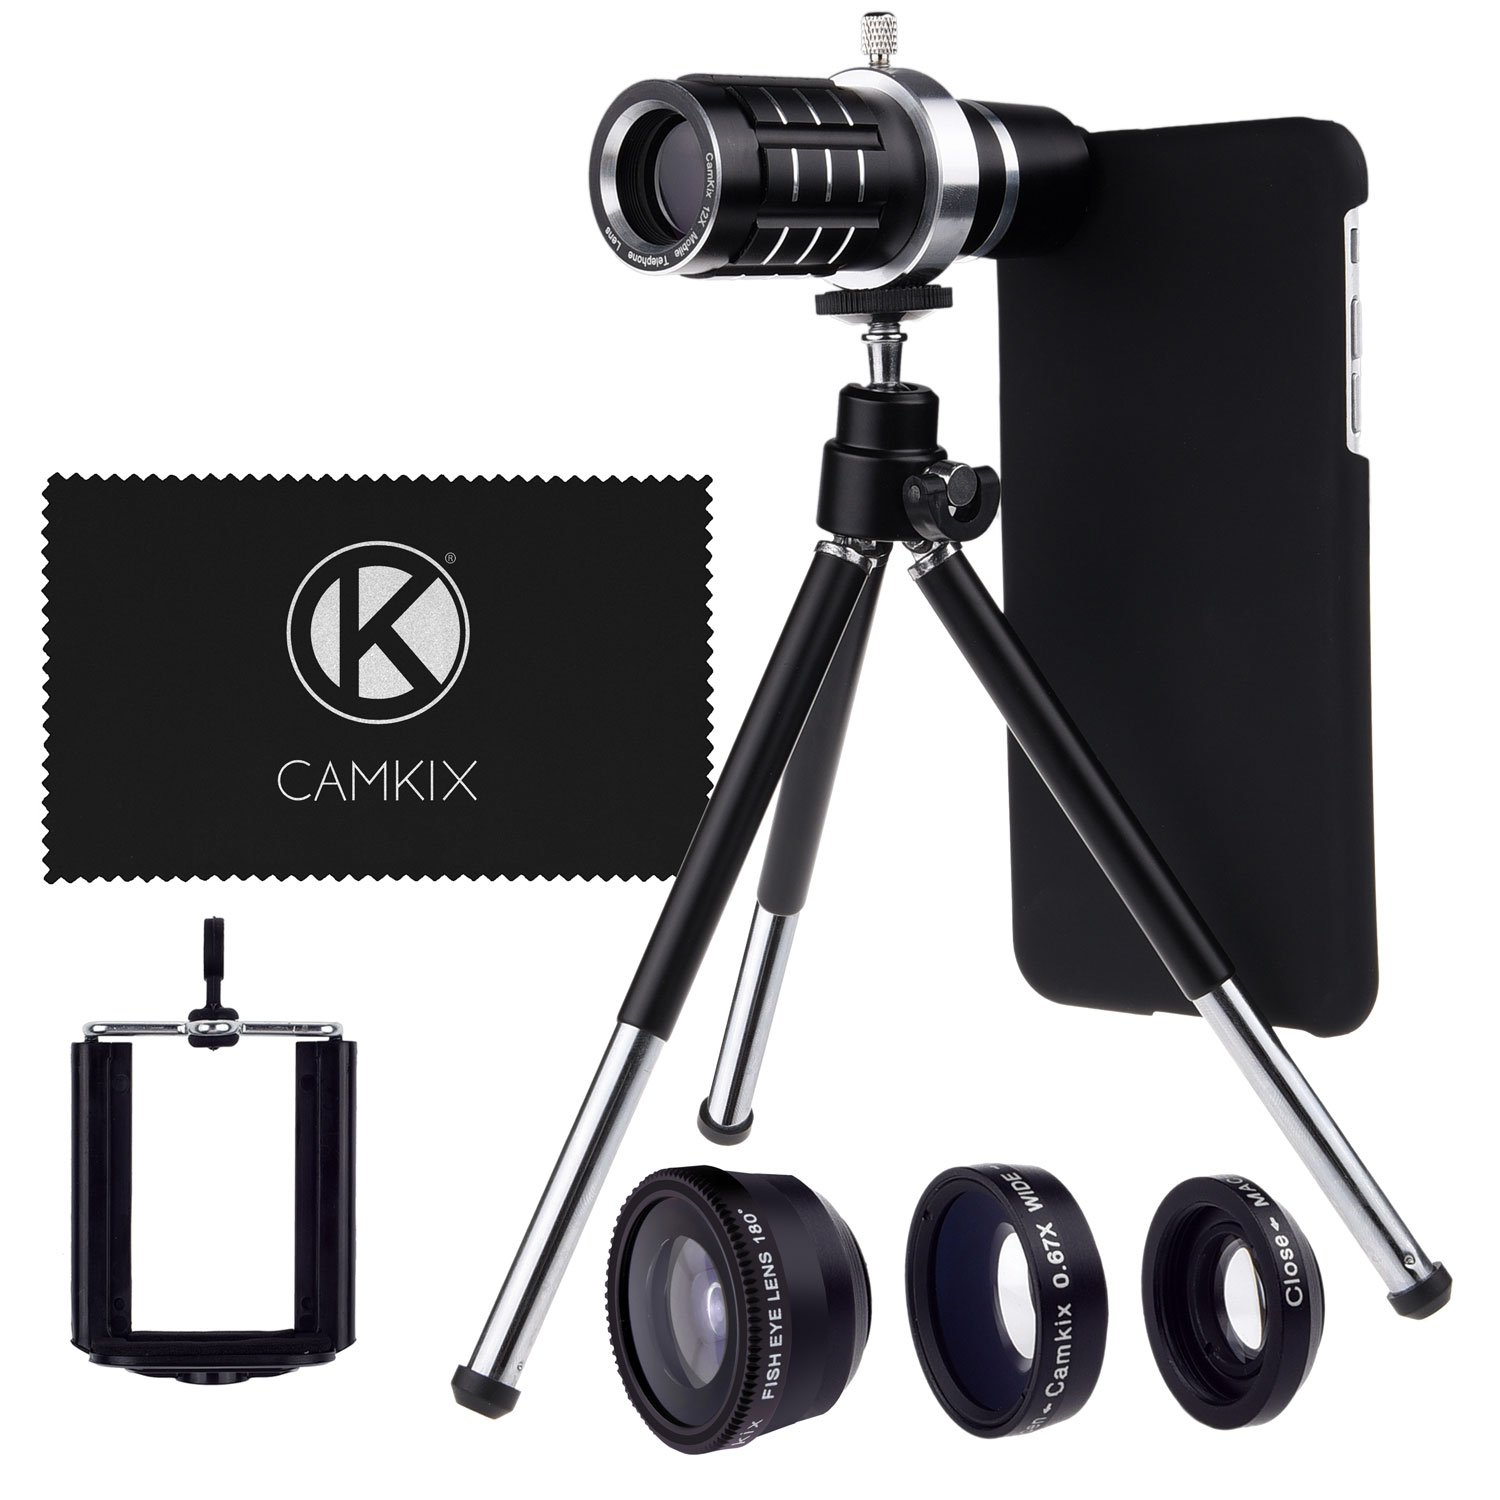 The CamKx Camera Lens Kit Compatible with Apple iPhone travel product recommended by Tina Butera on Lifney.